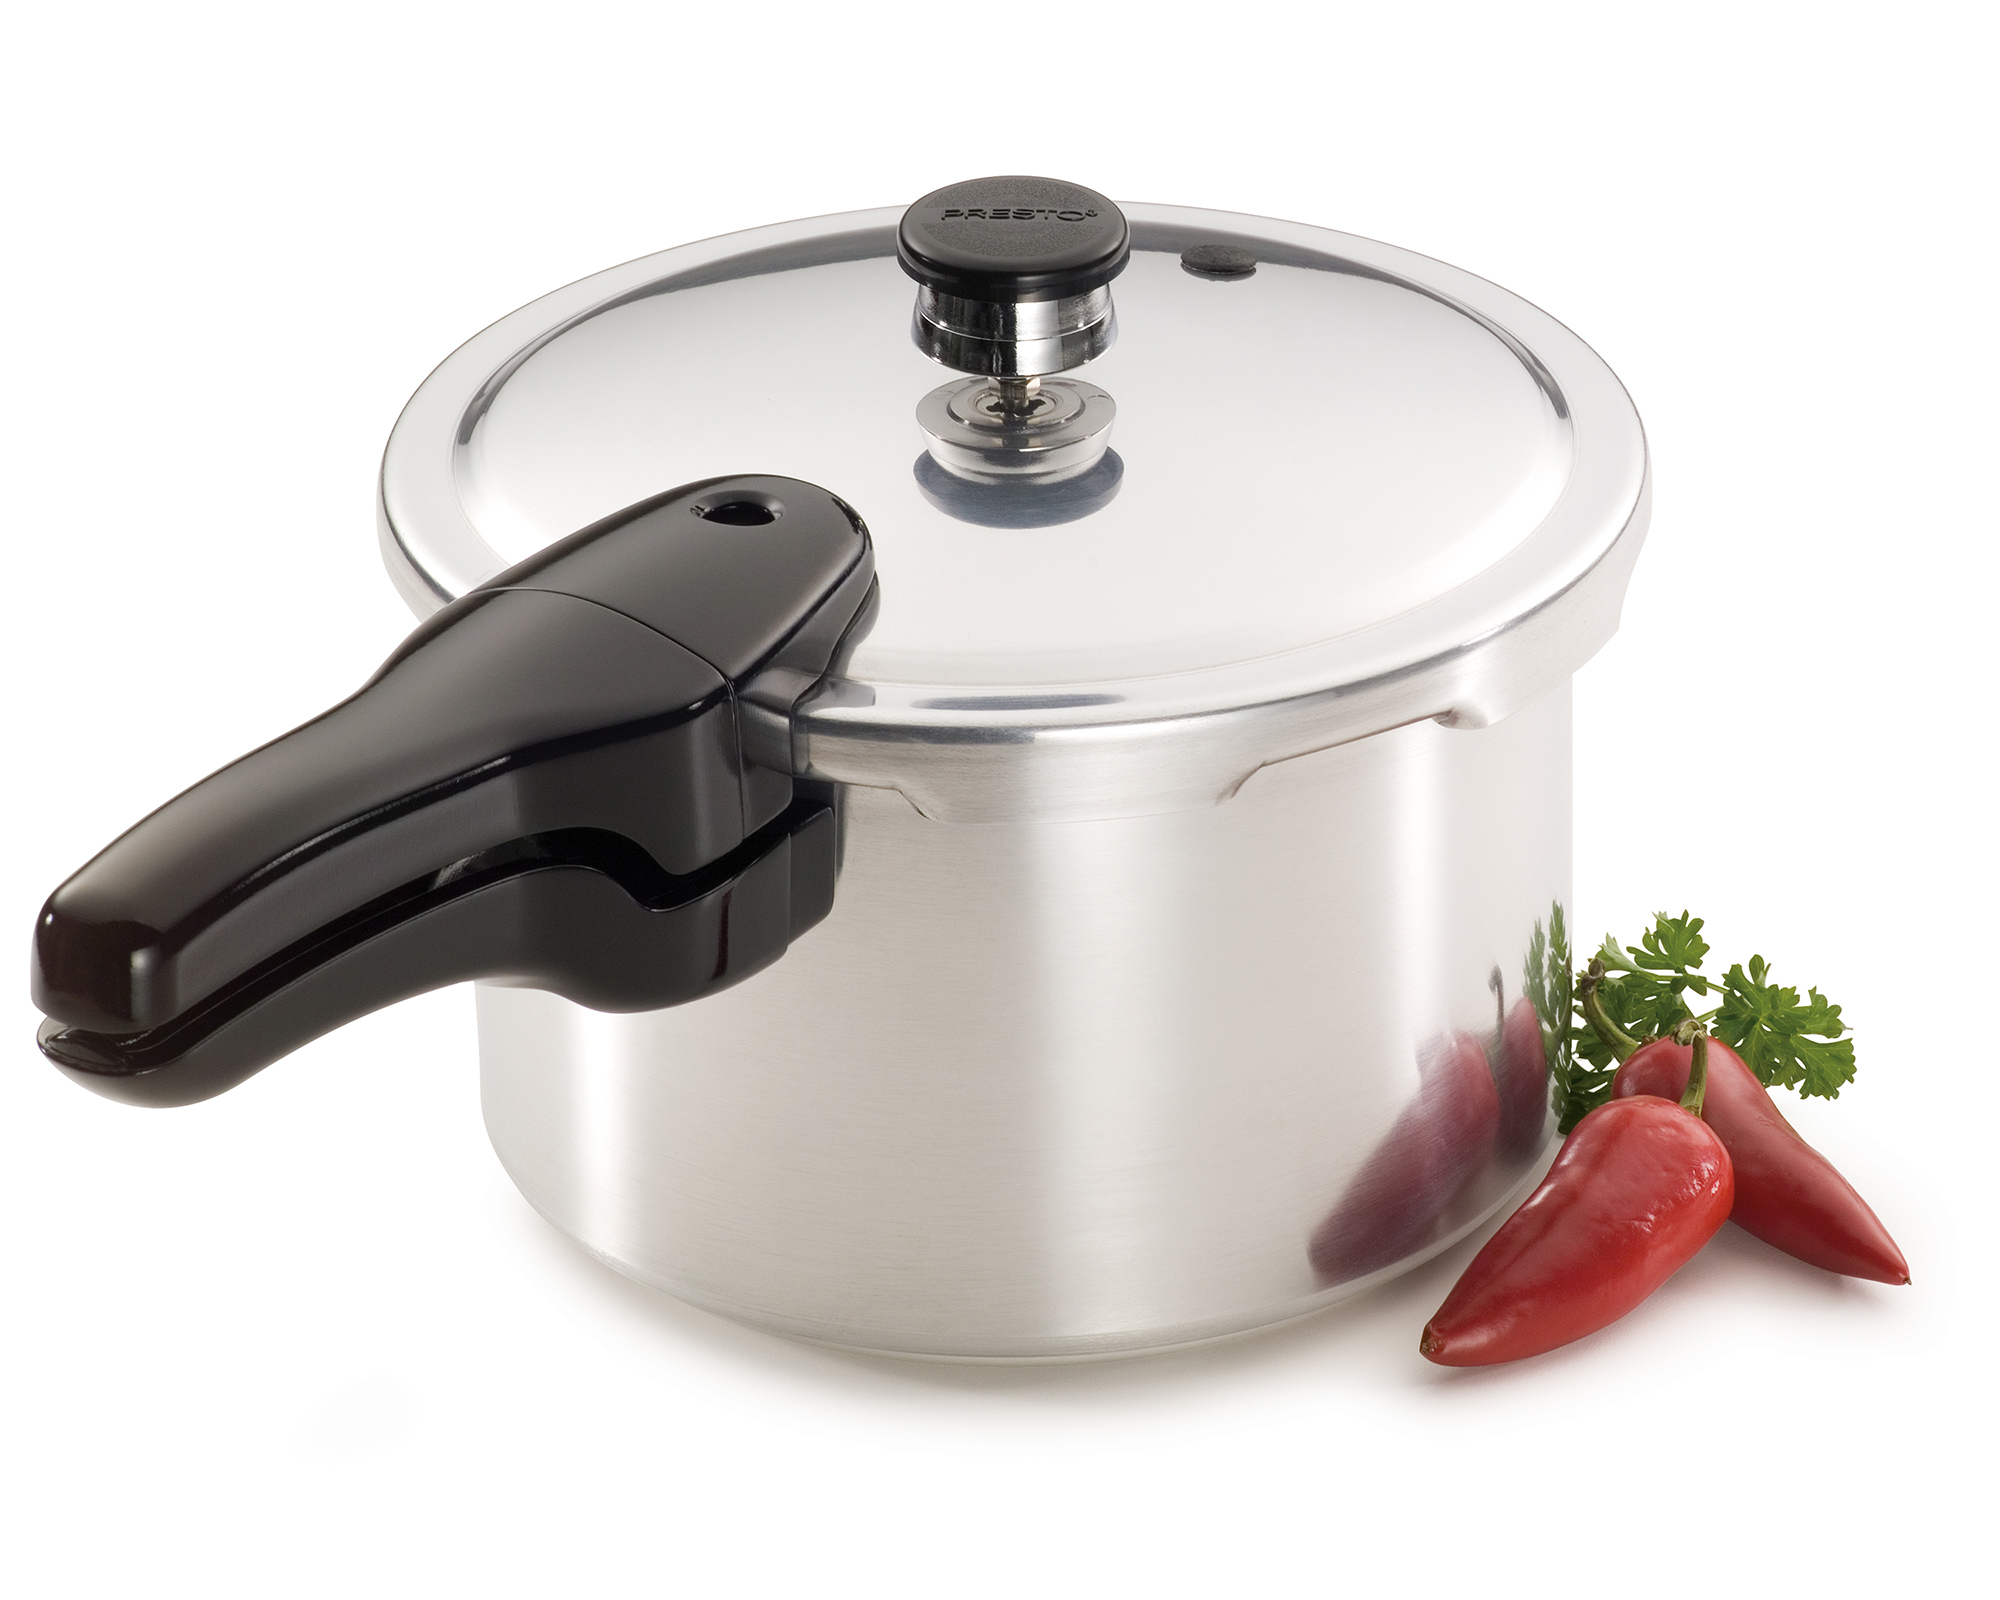 presto cooker canner instructions